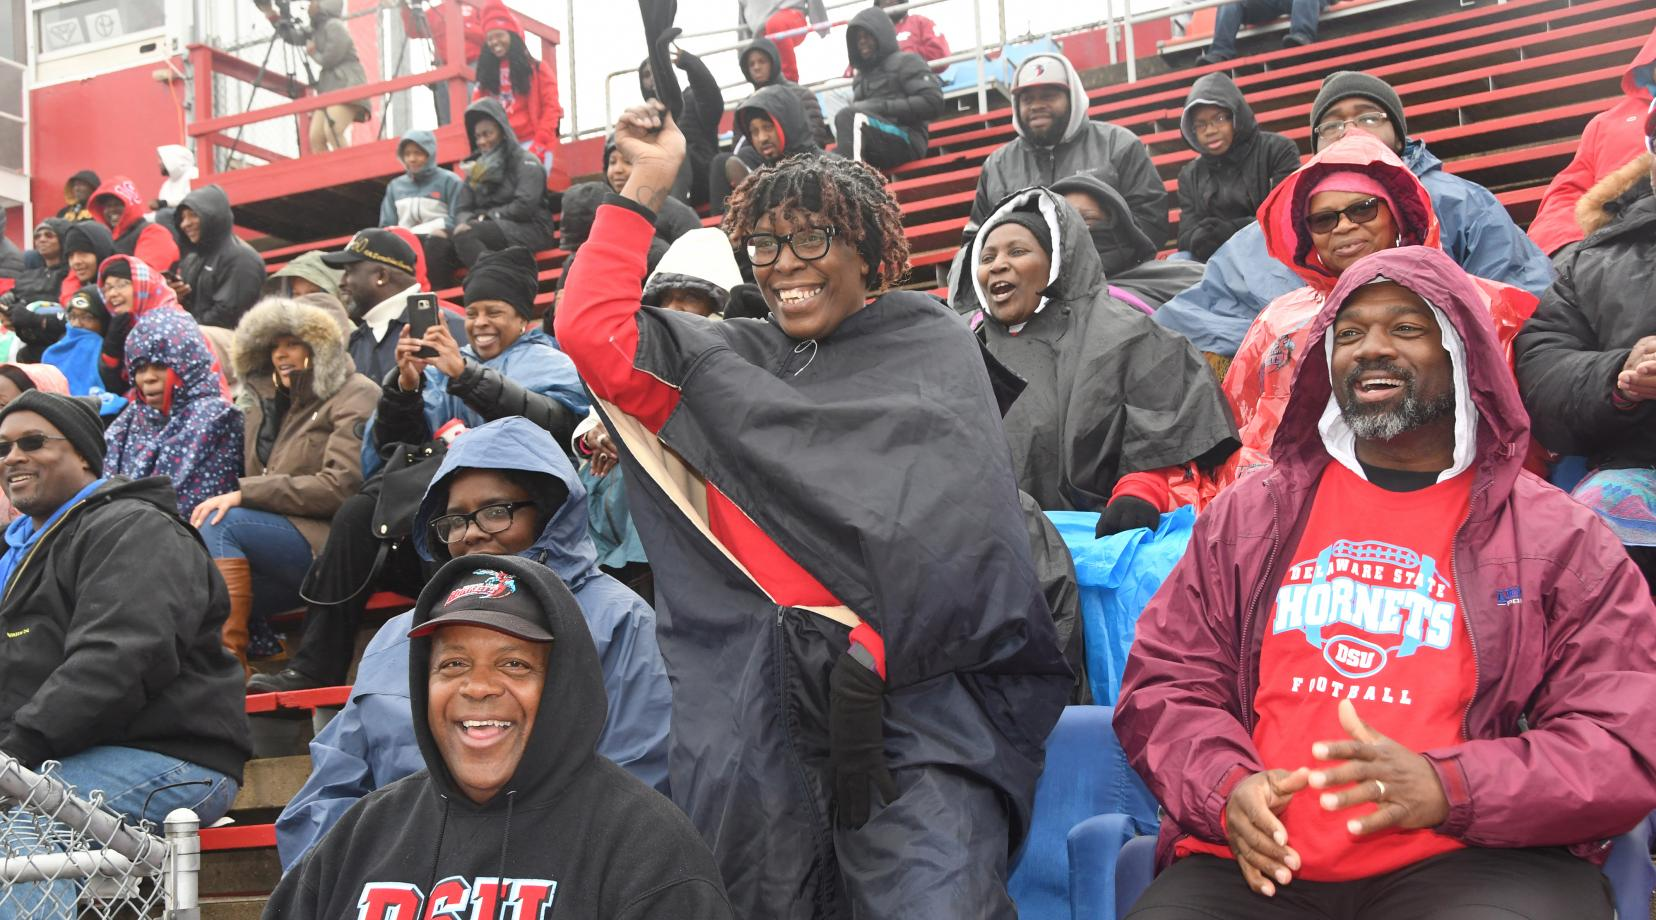 <p>The  Hornet Homecoming crowd were not disappointment their University's performance on the gridiron, as Delaware State University beat North Carolina Central 28-13.</p>